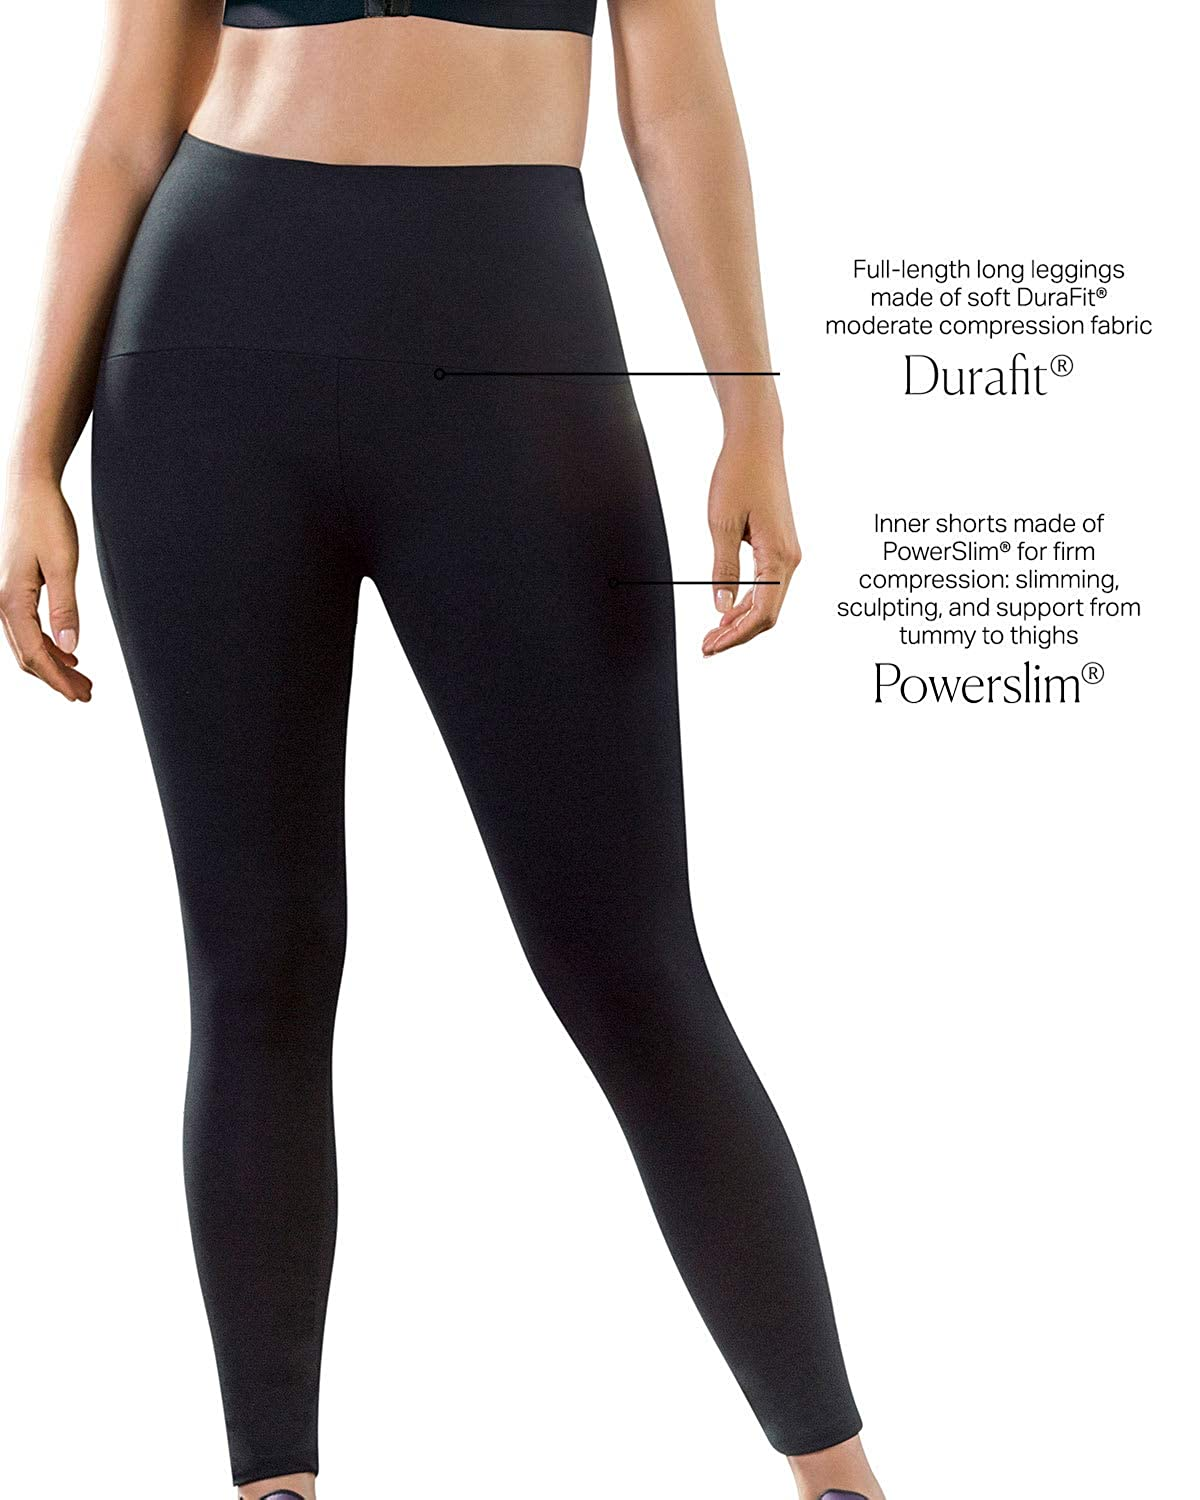 5ad1aadba3 Leonisa ActiveLife Power Lift Firm Compression High-Waisted Butt Lift  Leggings Activewear Pants for Women at Amazon Women's Clothing store: